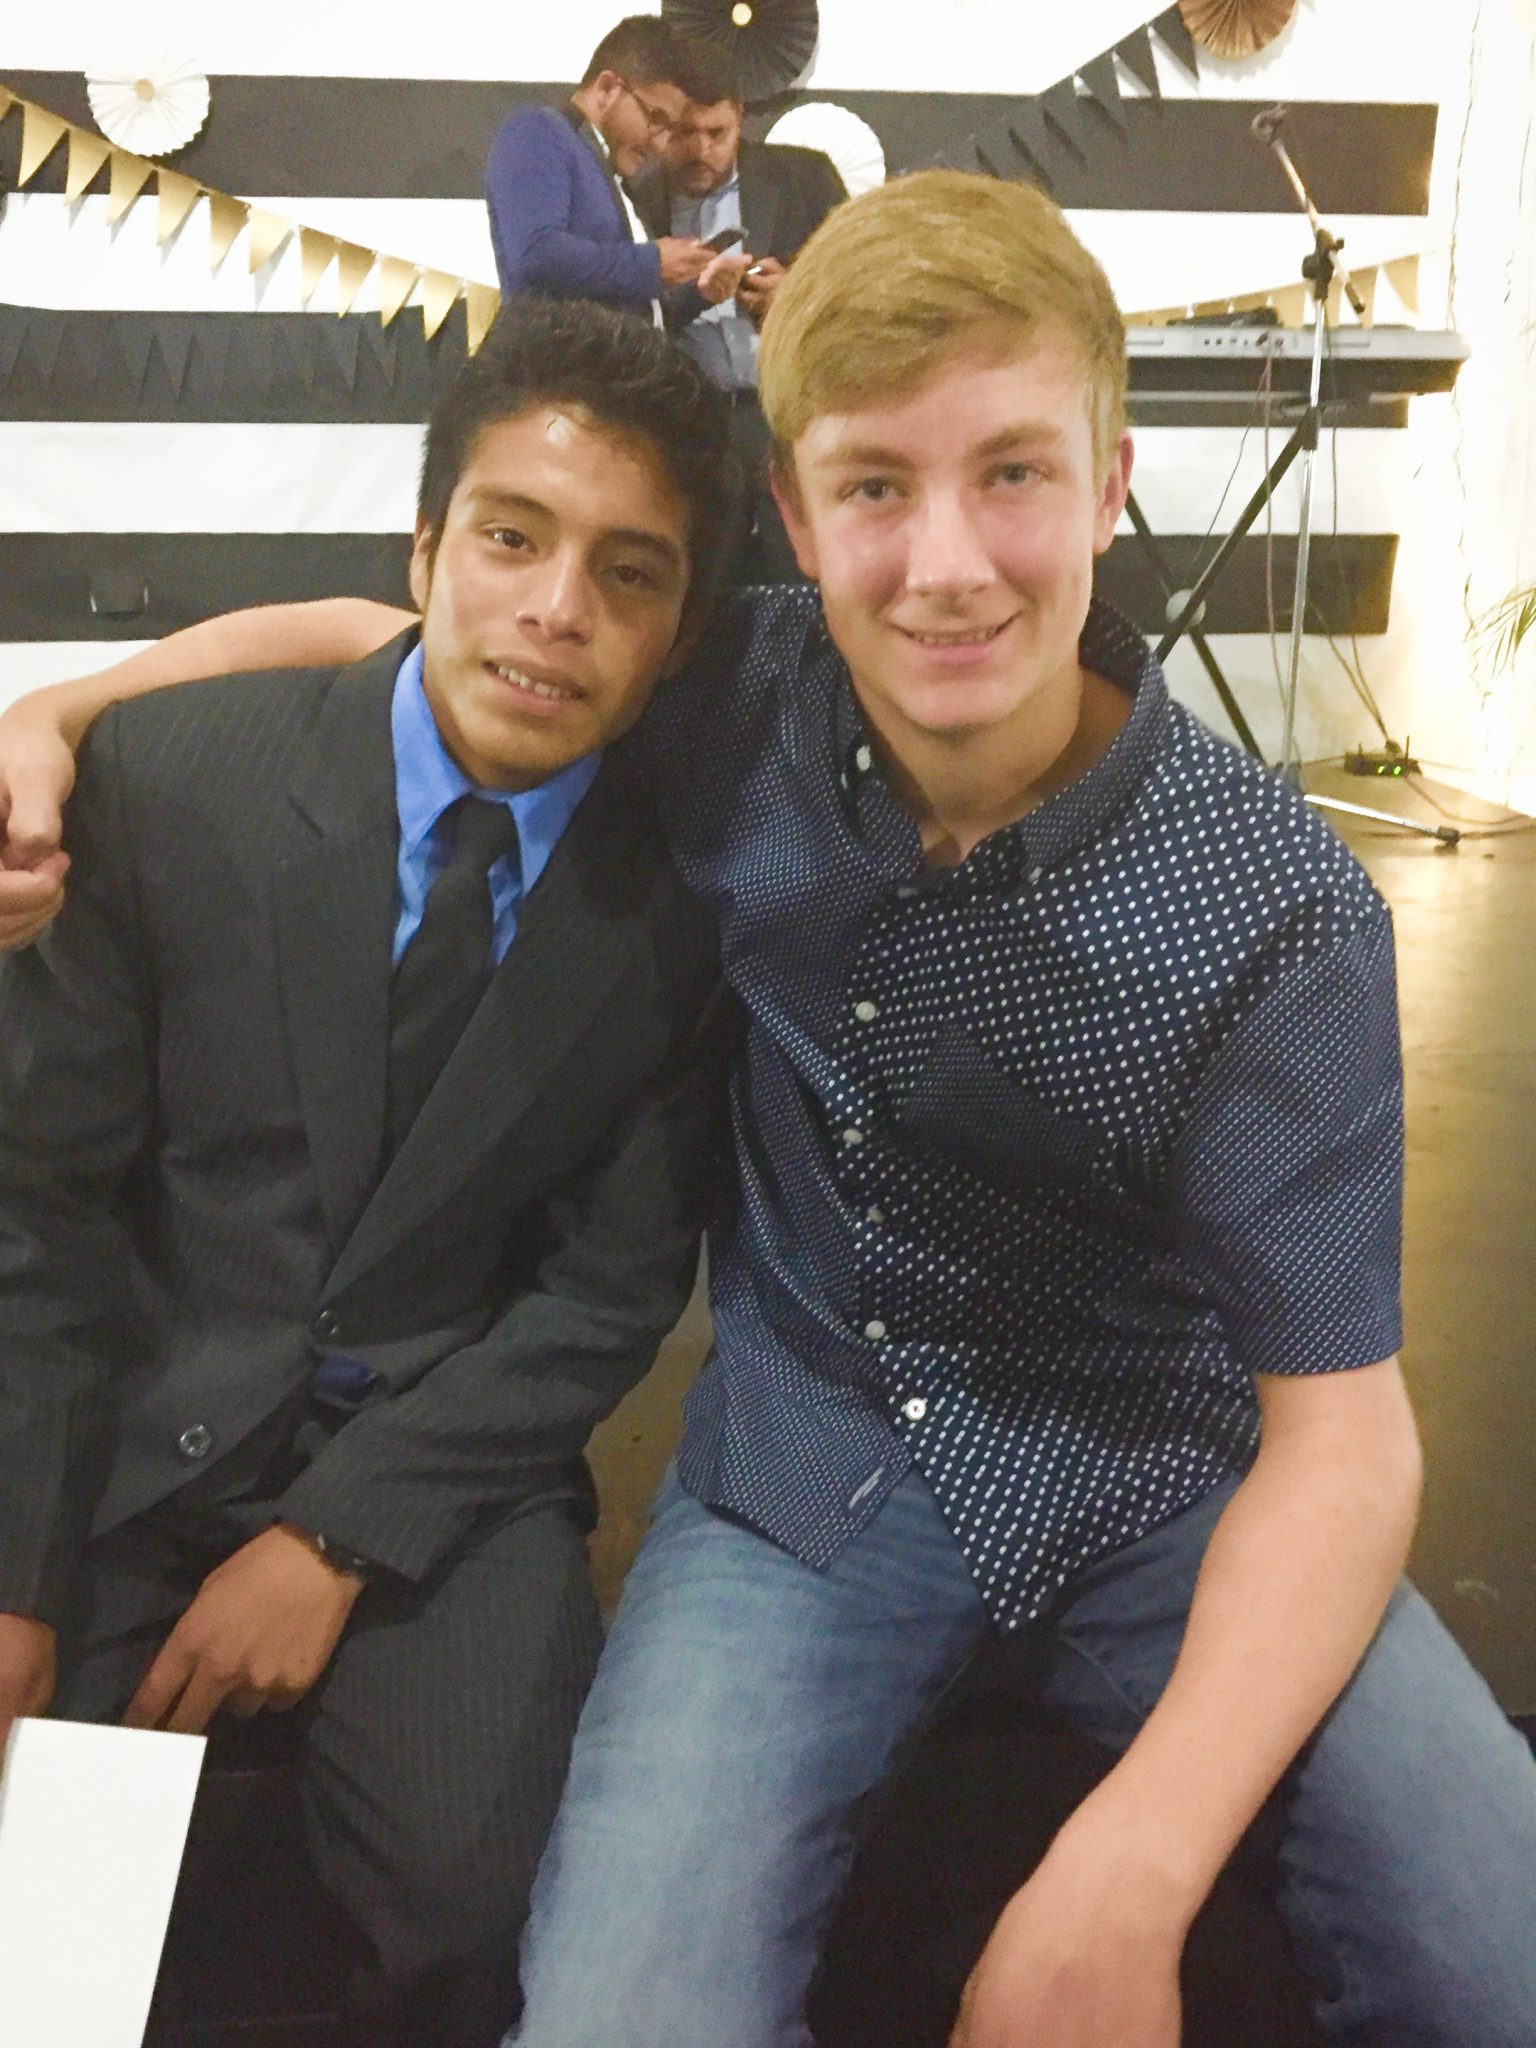 Jaime and Ethan at Graduation (October 2018)